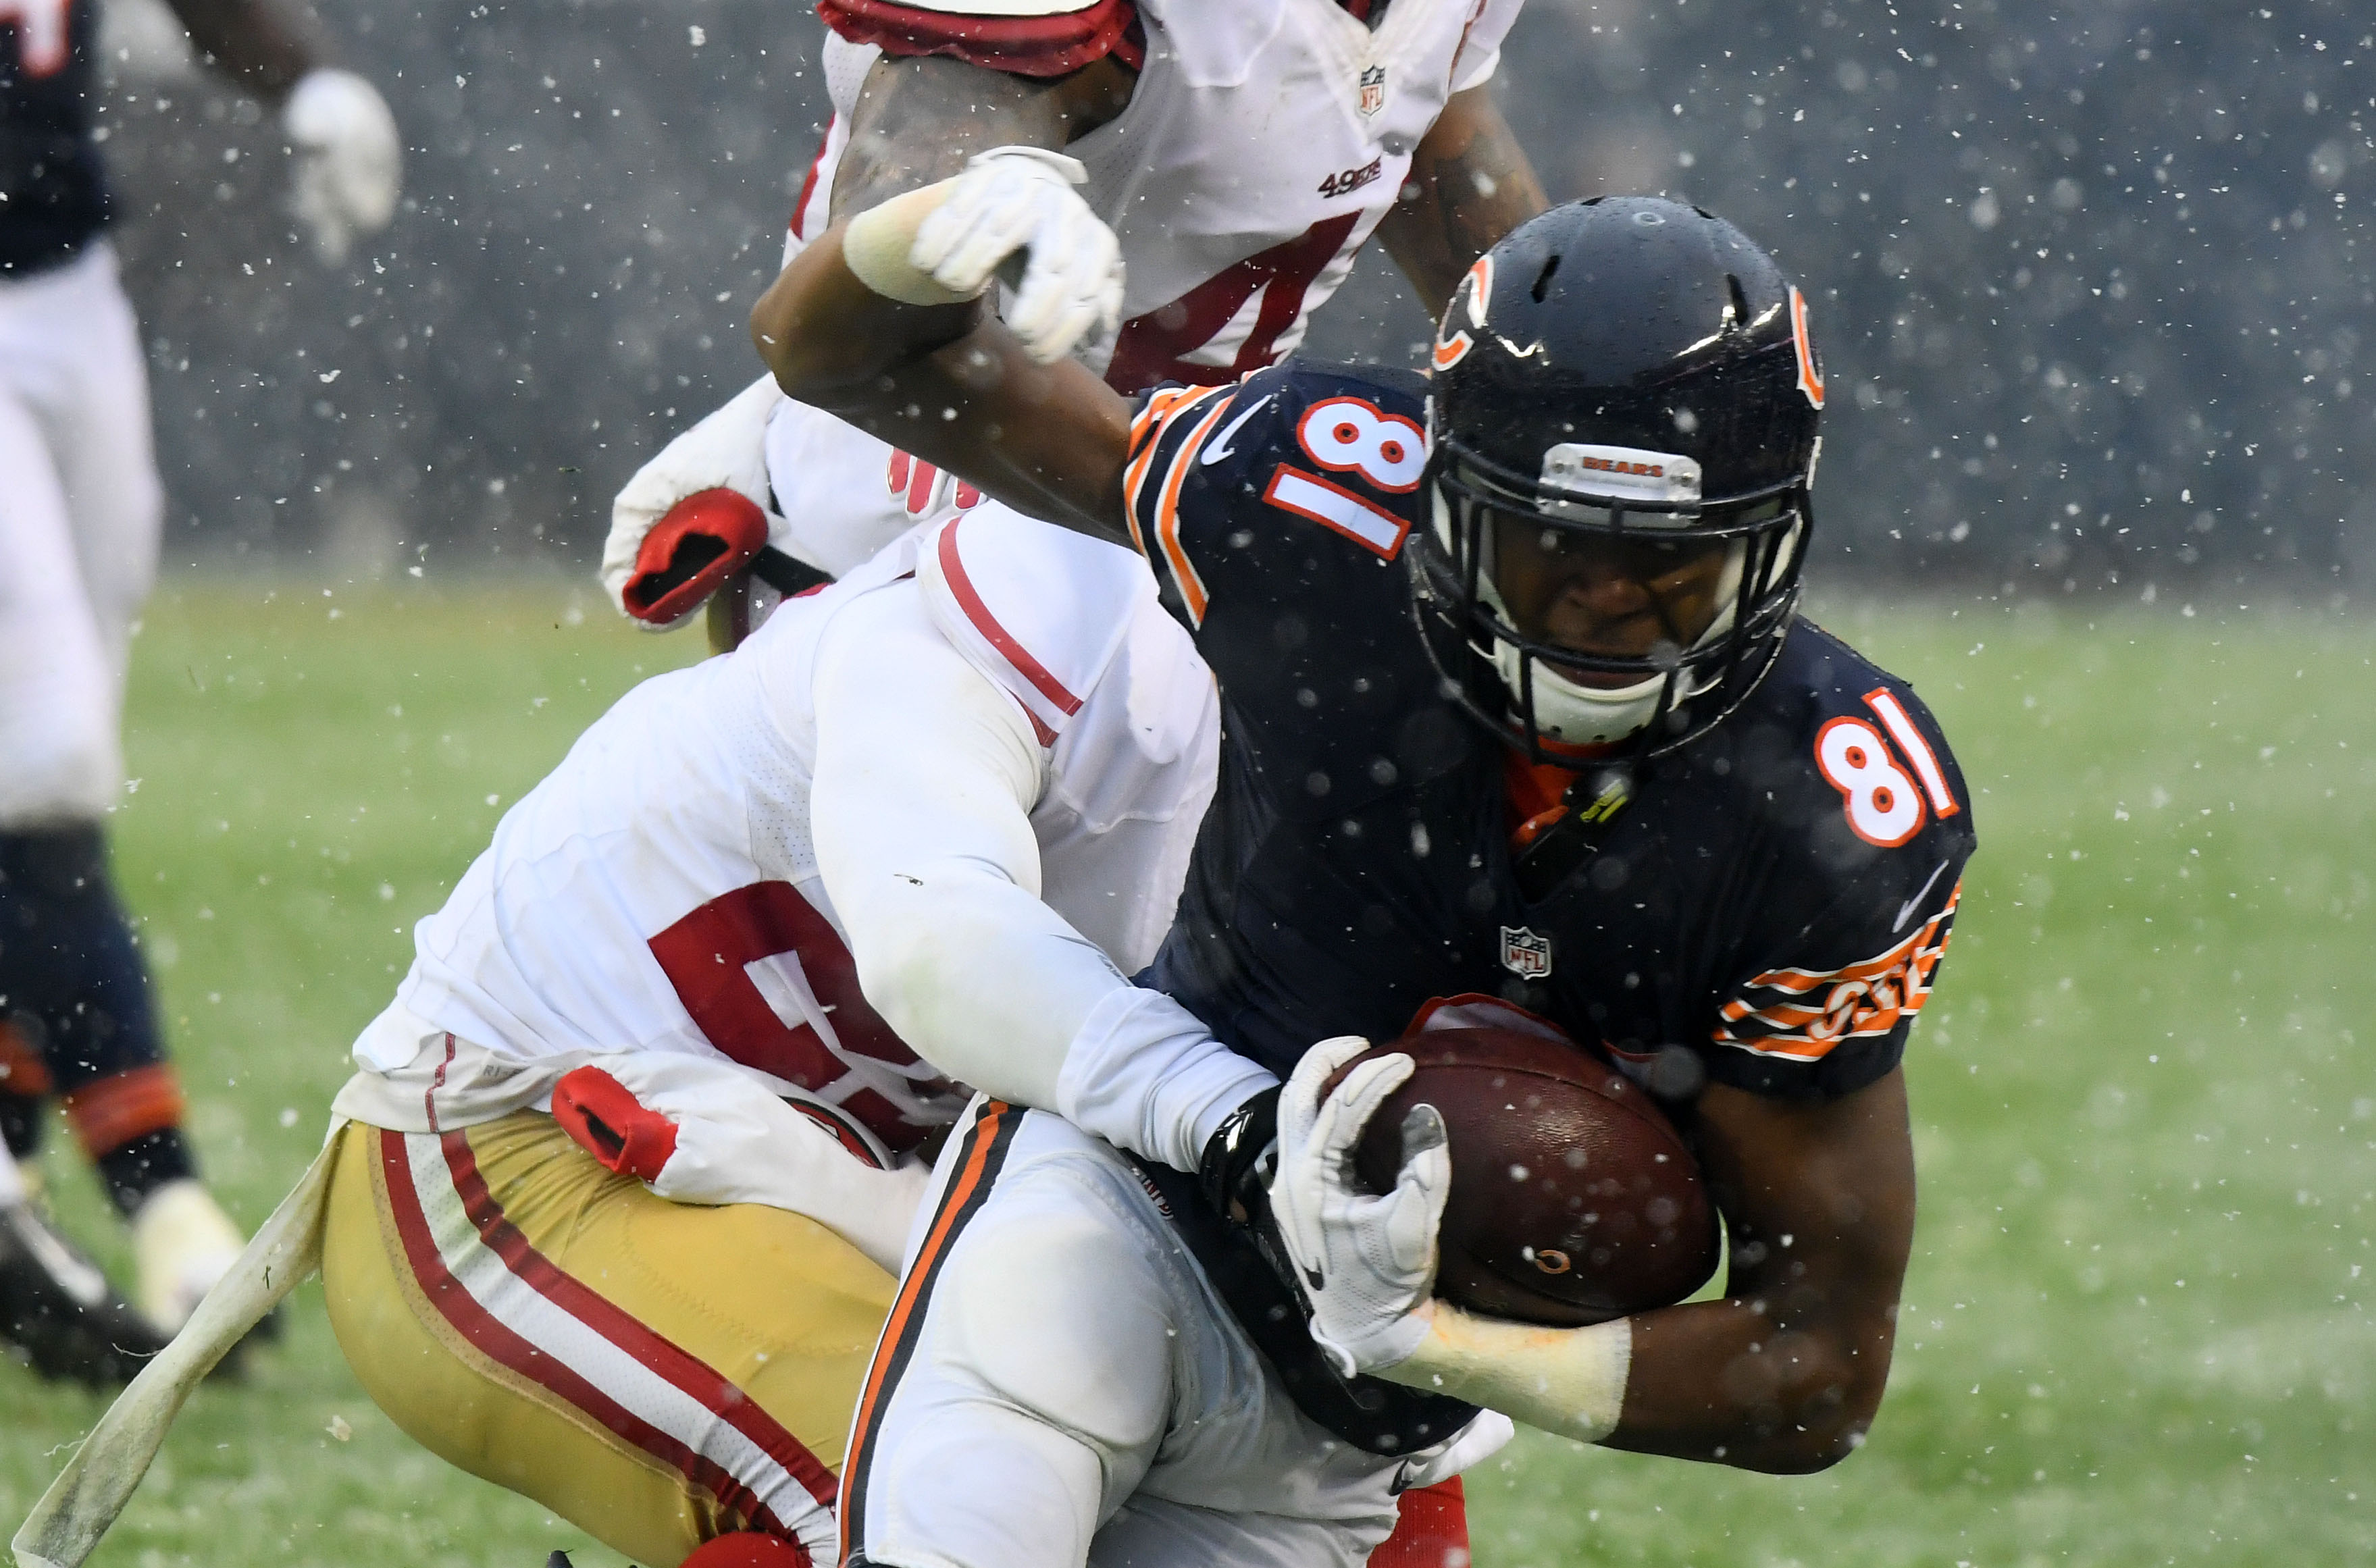 9724729-nfl-san-francisco-49ers-at-chicago-bears